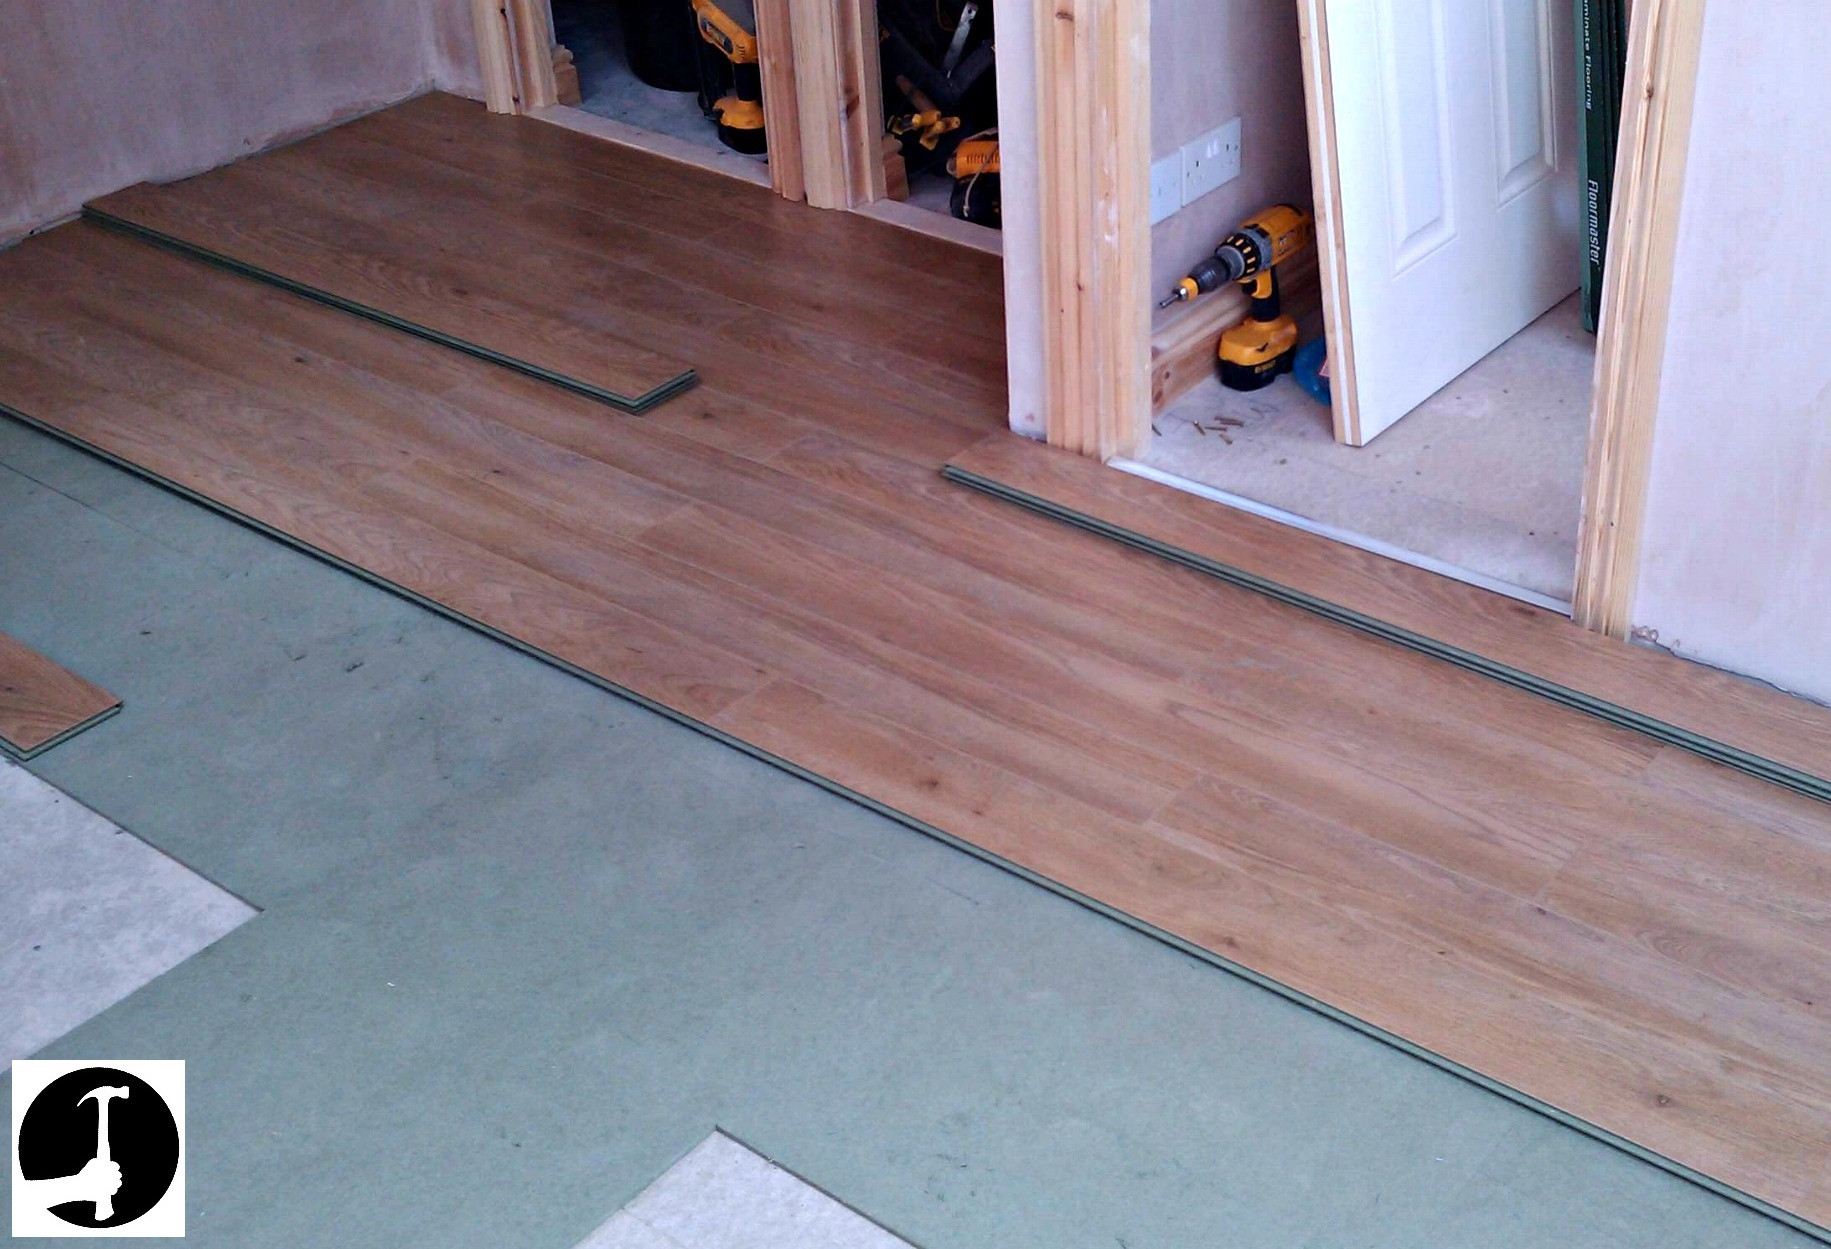 Easy Click Hardwood Flooring Of How to Install Laminate Flooring with Ease Glued Glue Less Systems with Laminate Started